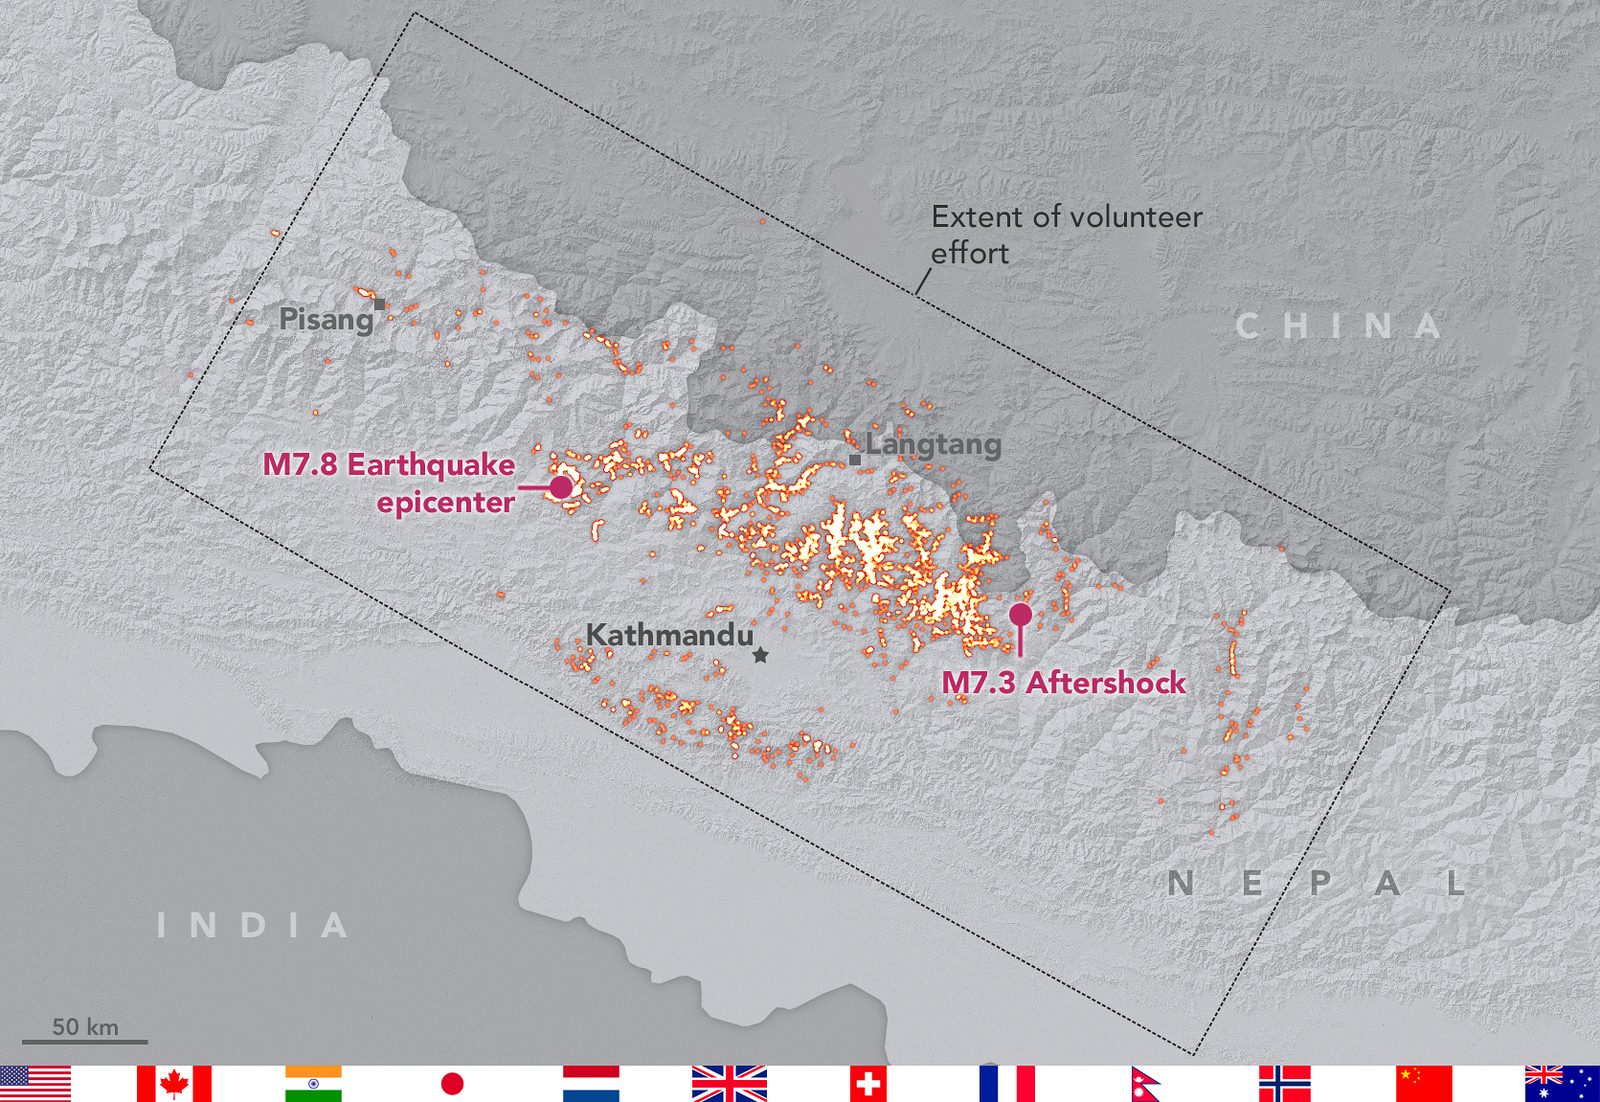 An International Volunteer Geohazards Team Mapped Landslides Triggered By The 2015 Nepal Gorkha Earthquake And Its